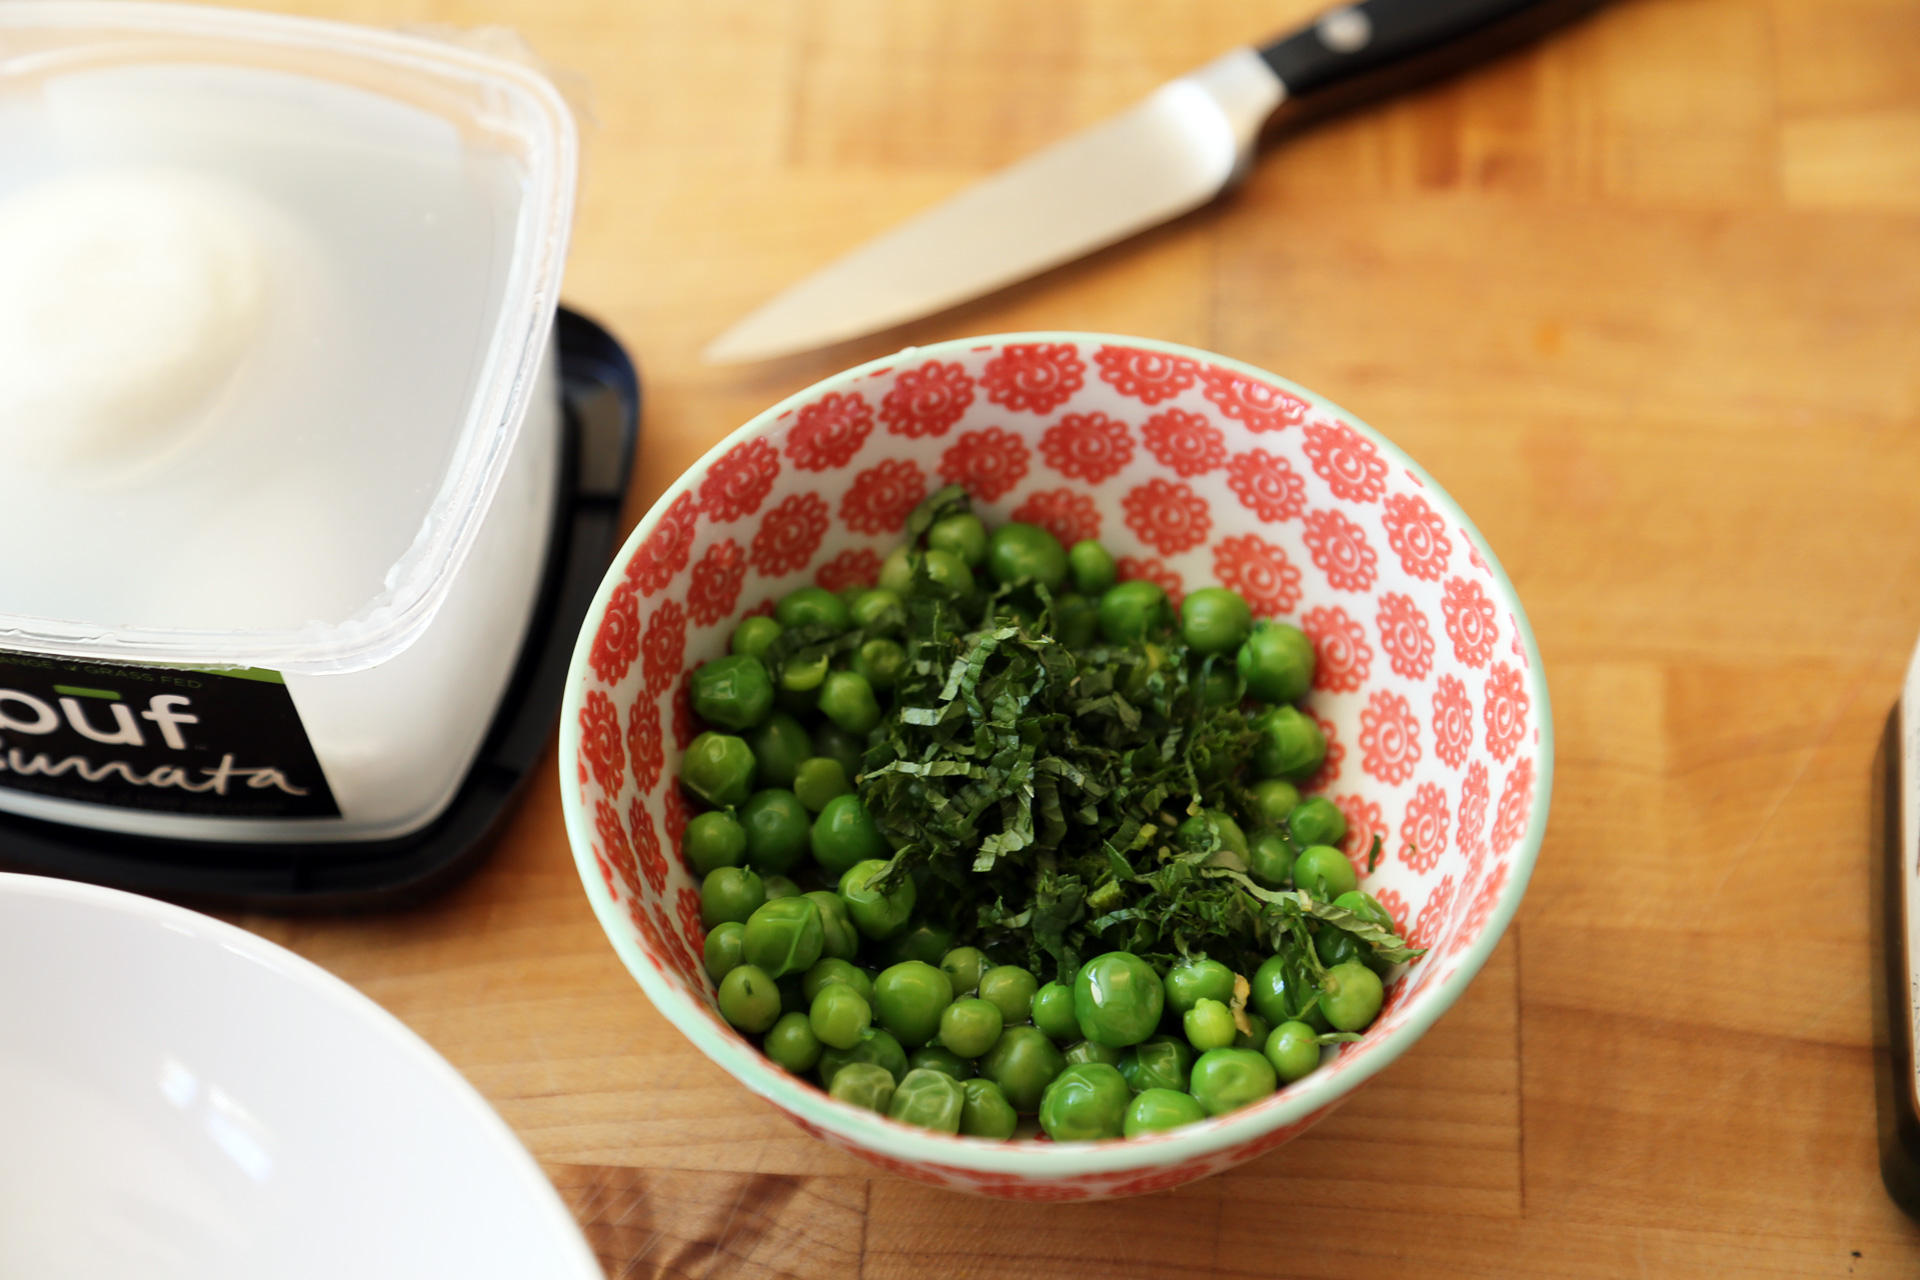 n a bowl, toss together the peas, olive oil, lemon juice, and mint.